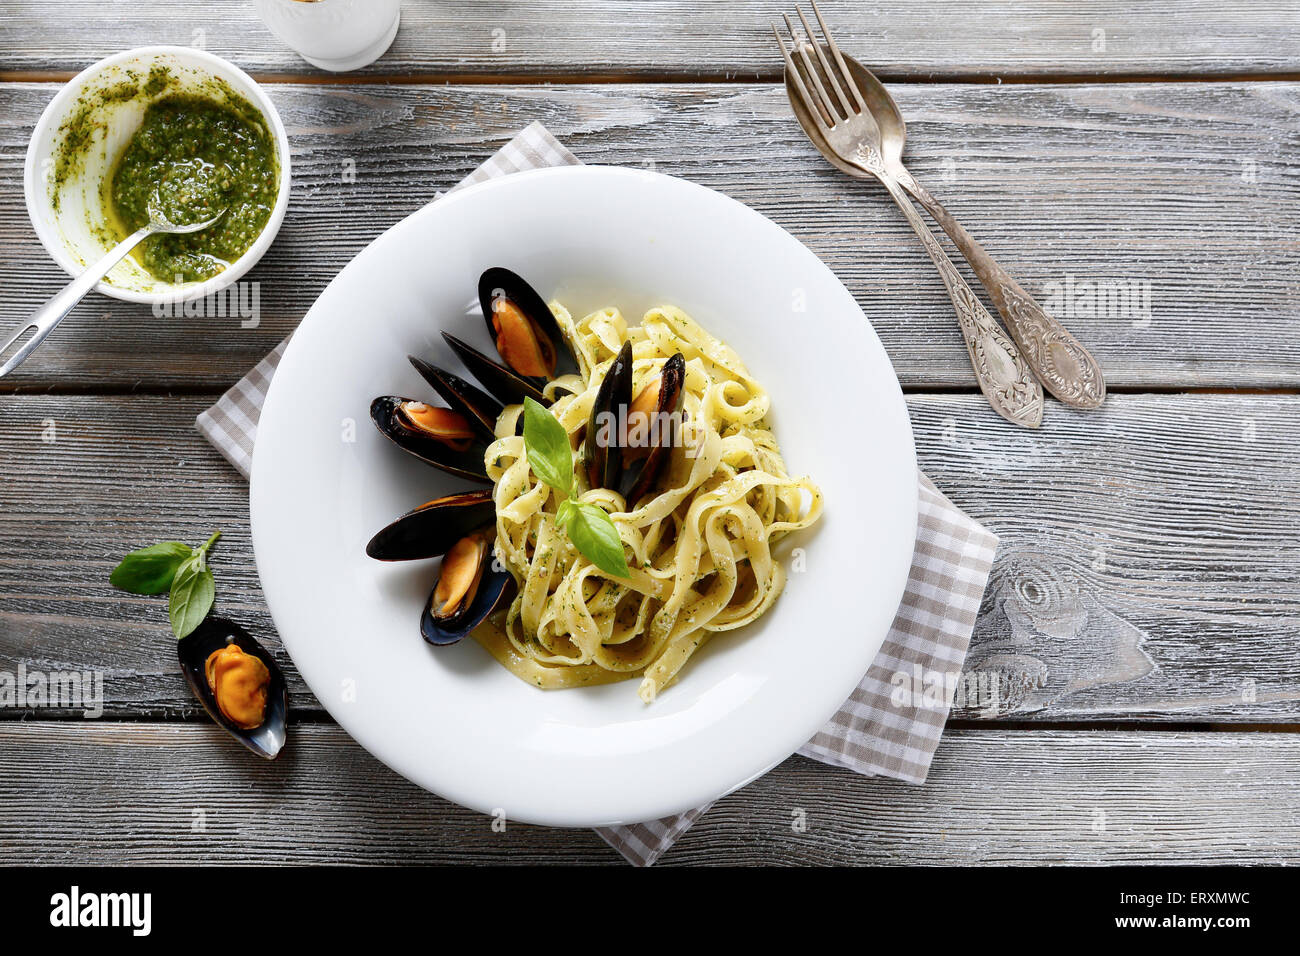 Nutritional pasta with seafood, top view - Stock Image